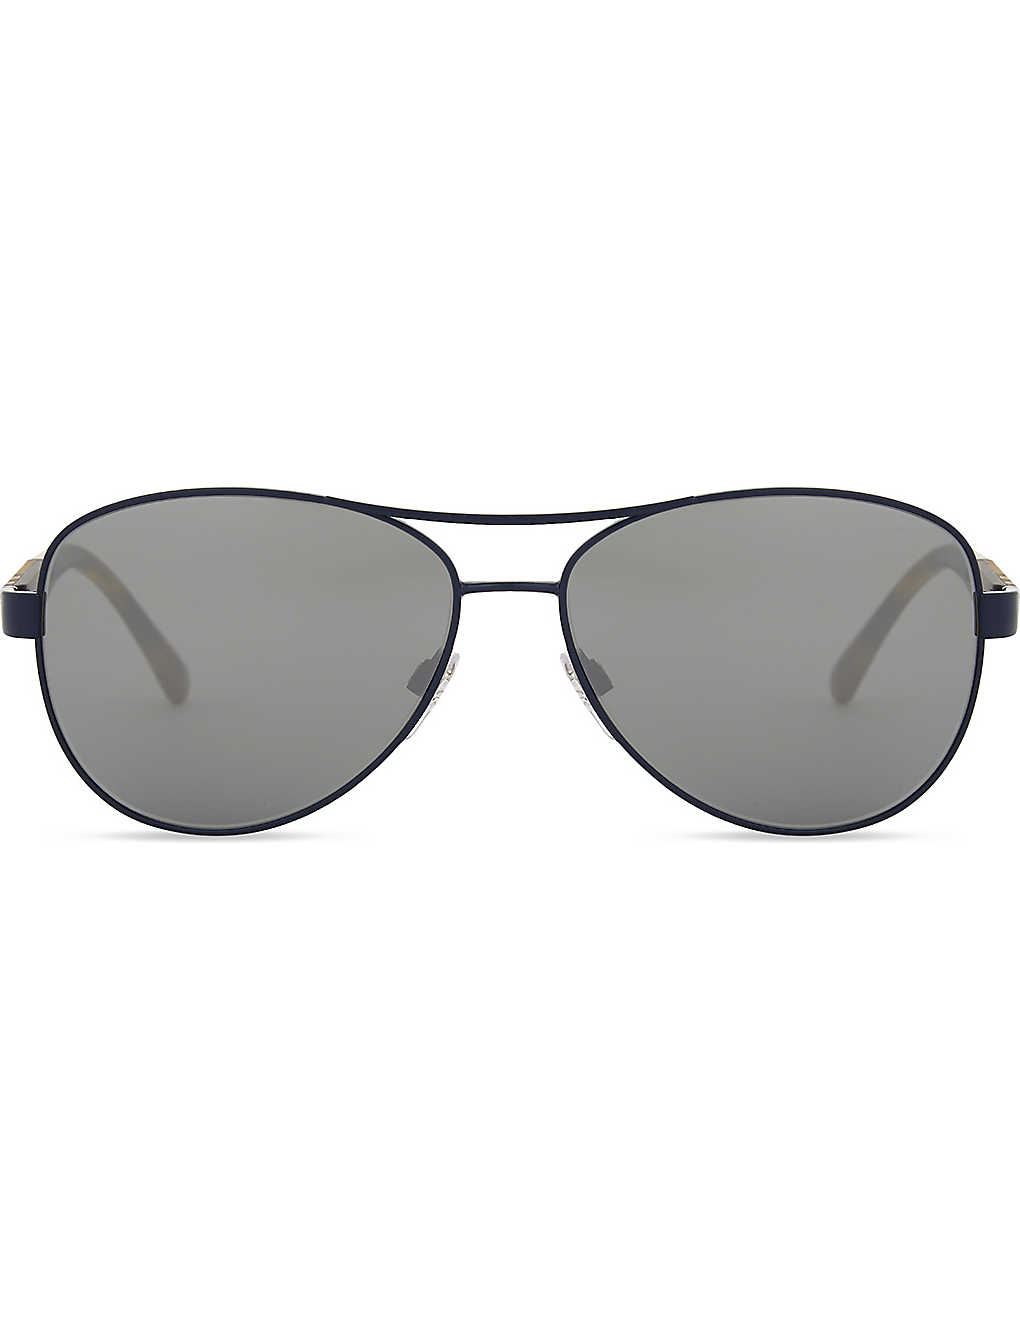 2fb0f96cd BURBERRY - Be3080 aviator sunglasses | Selfridges.com